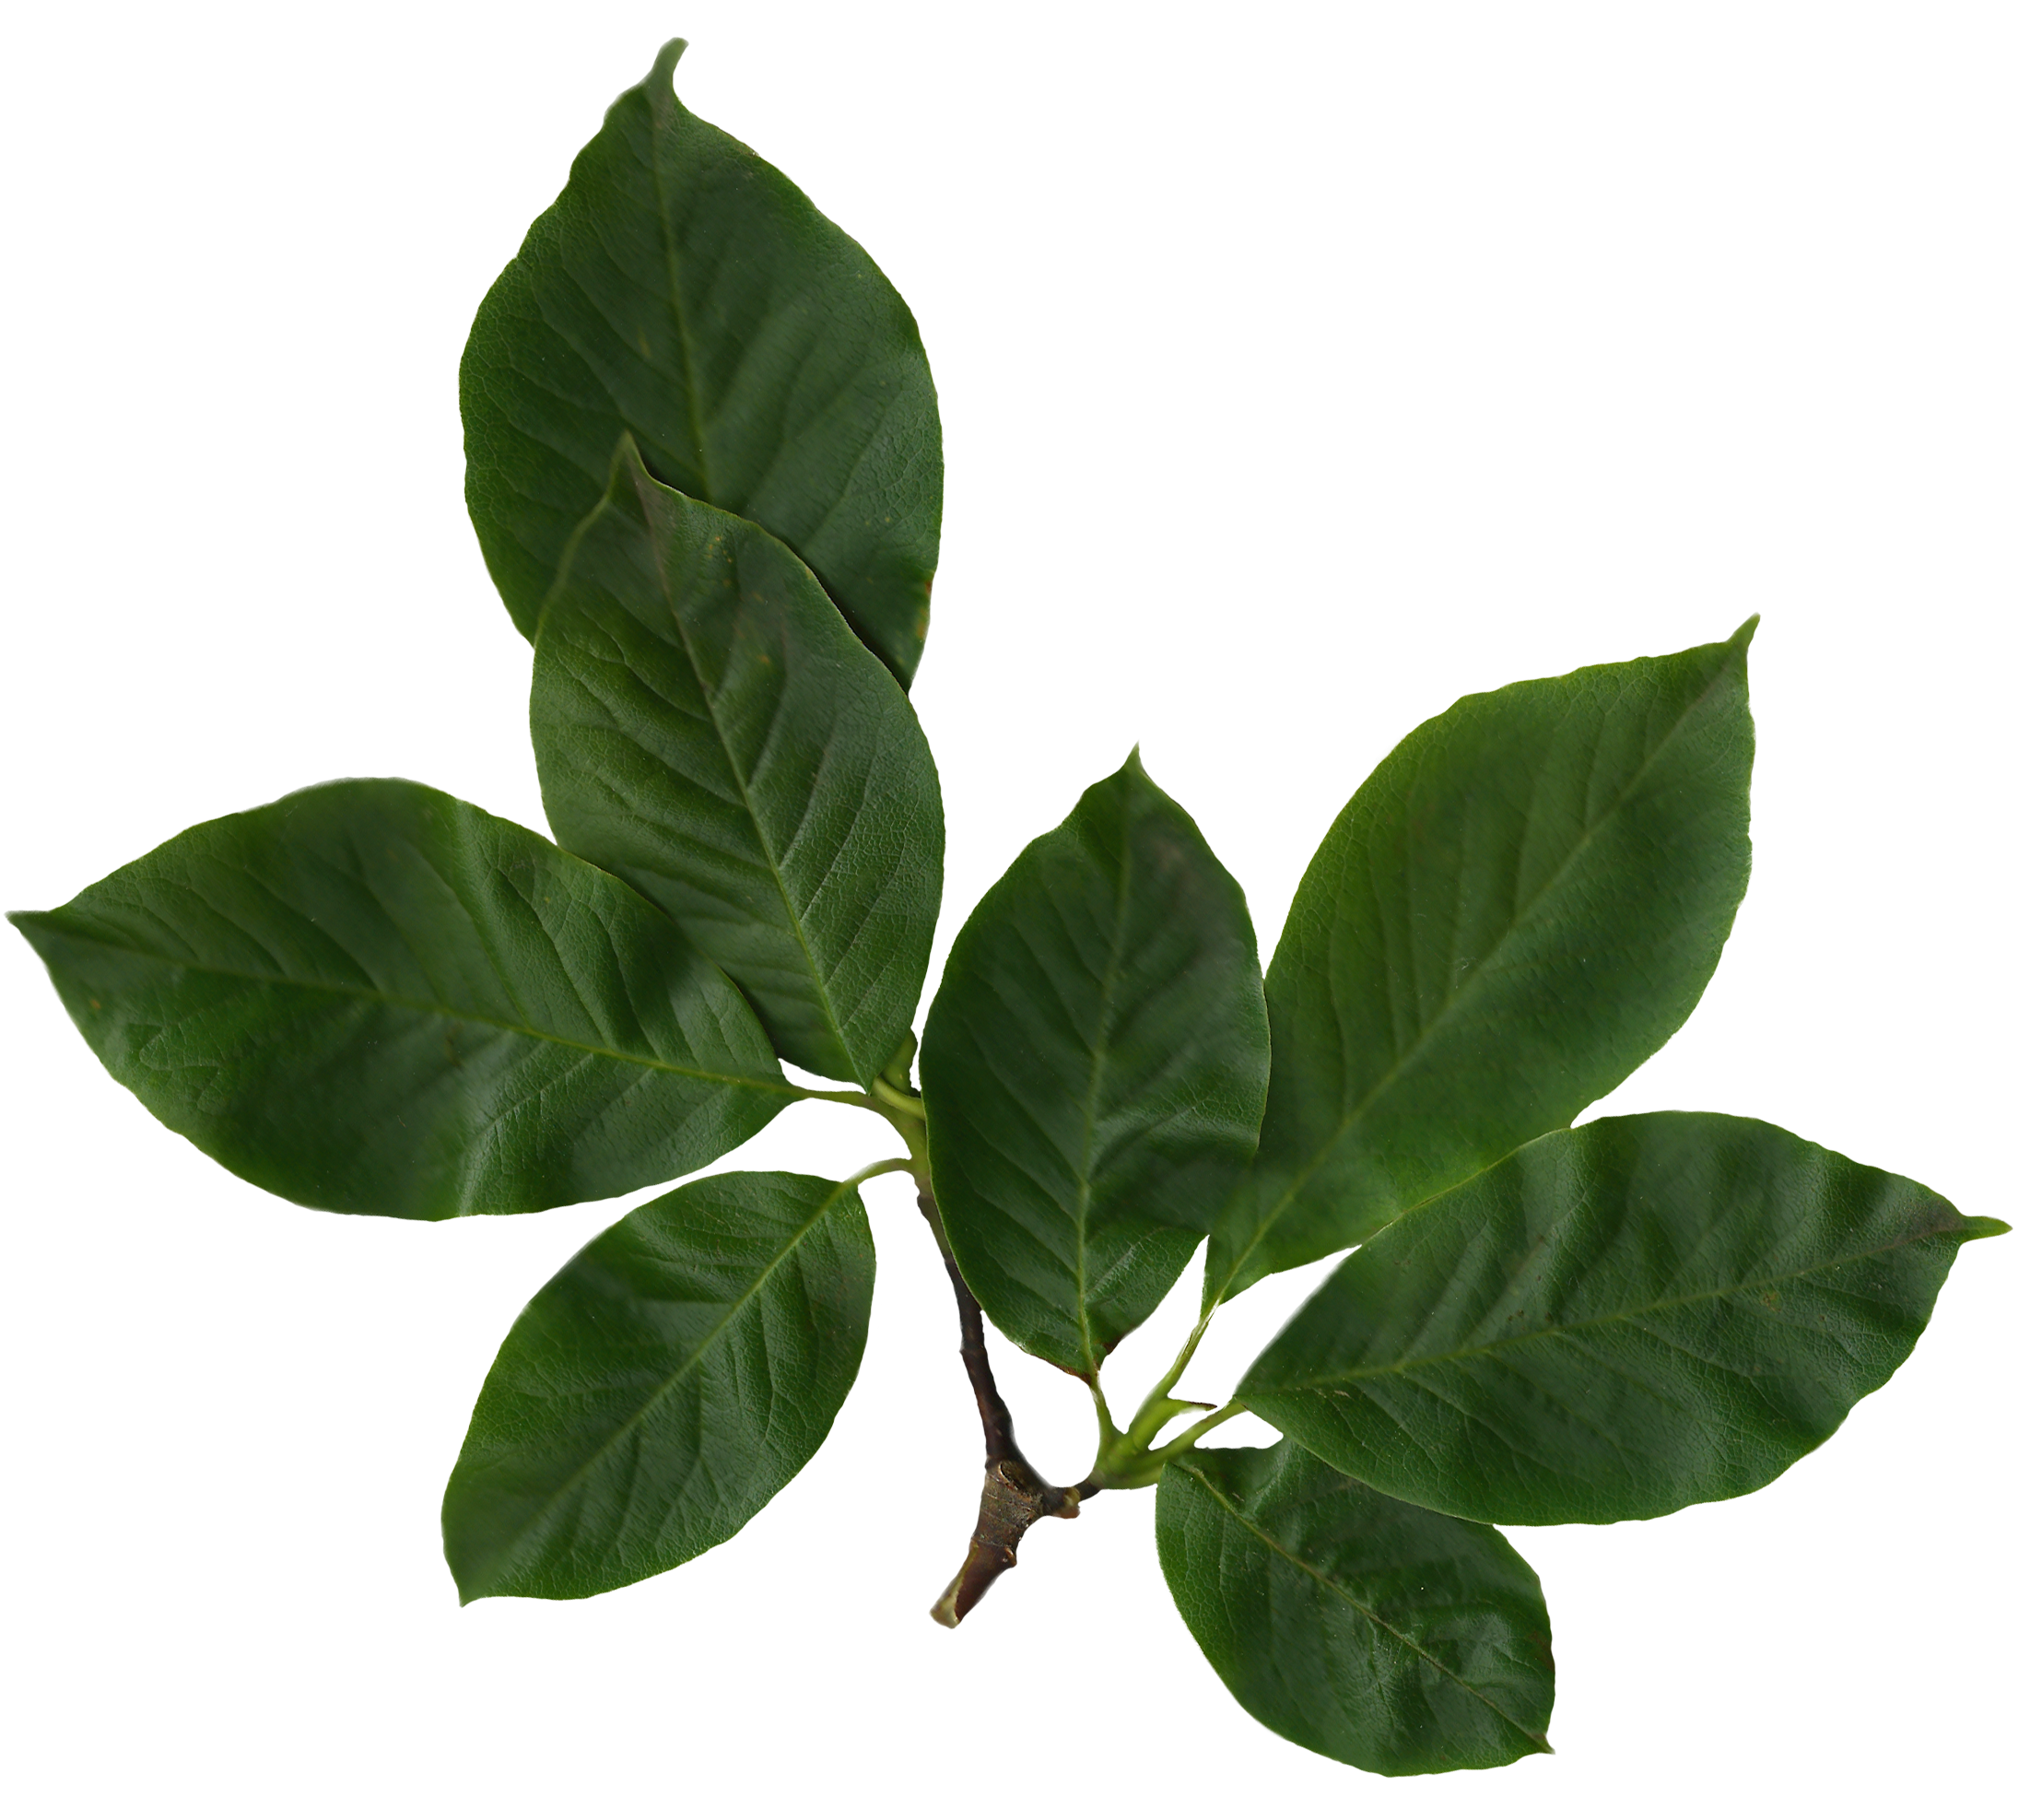 File:Magnolia Soulangiana Scanned Leaves.png - Leaves PNG